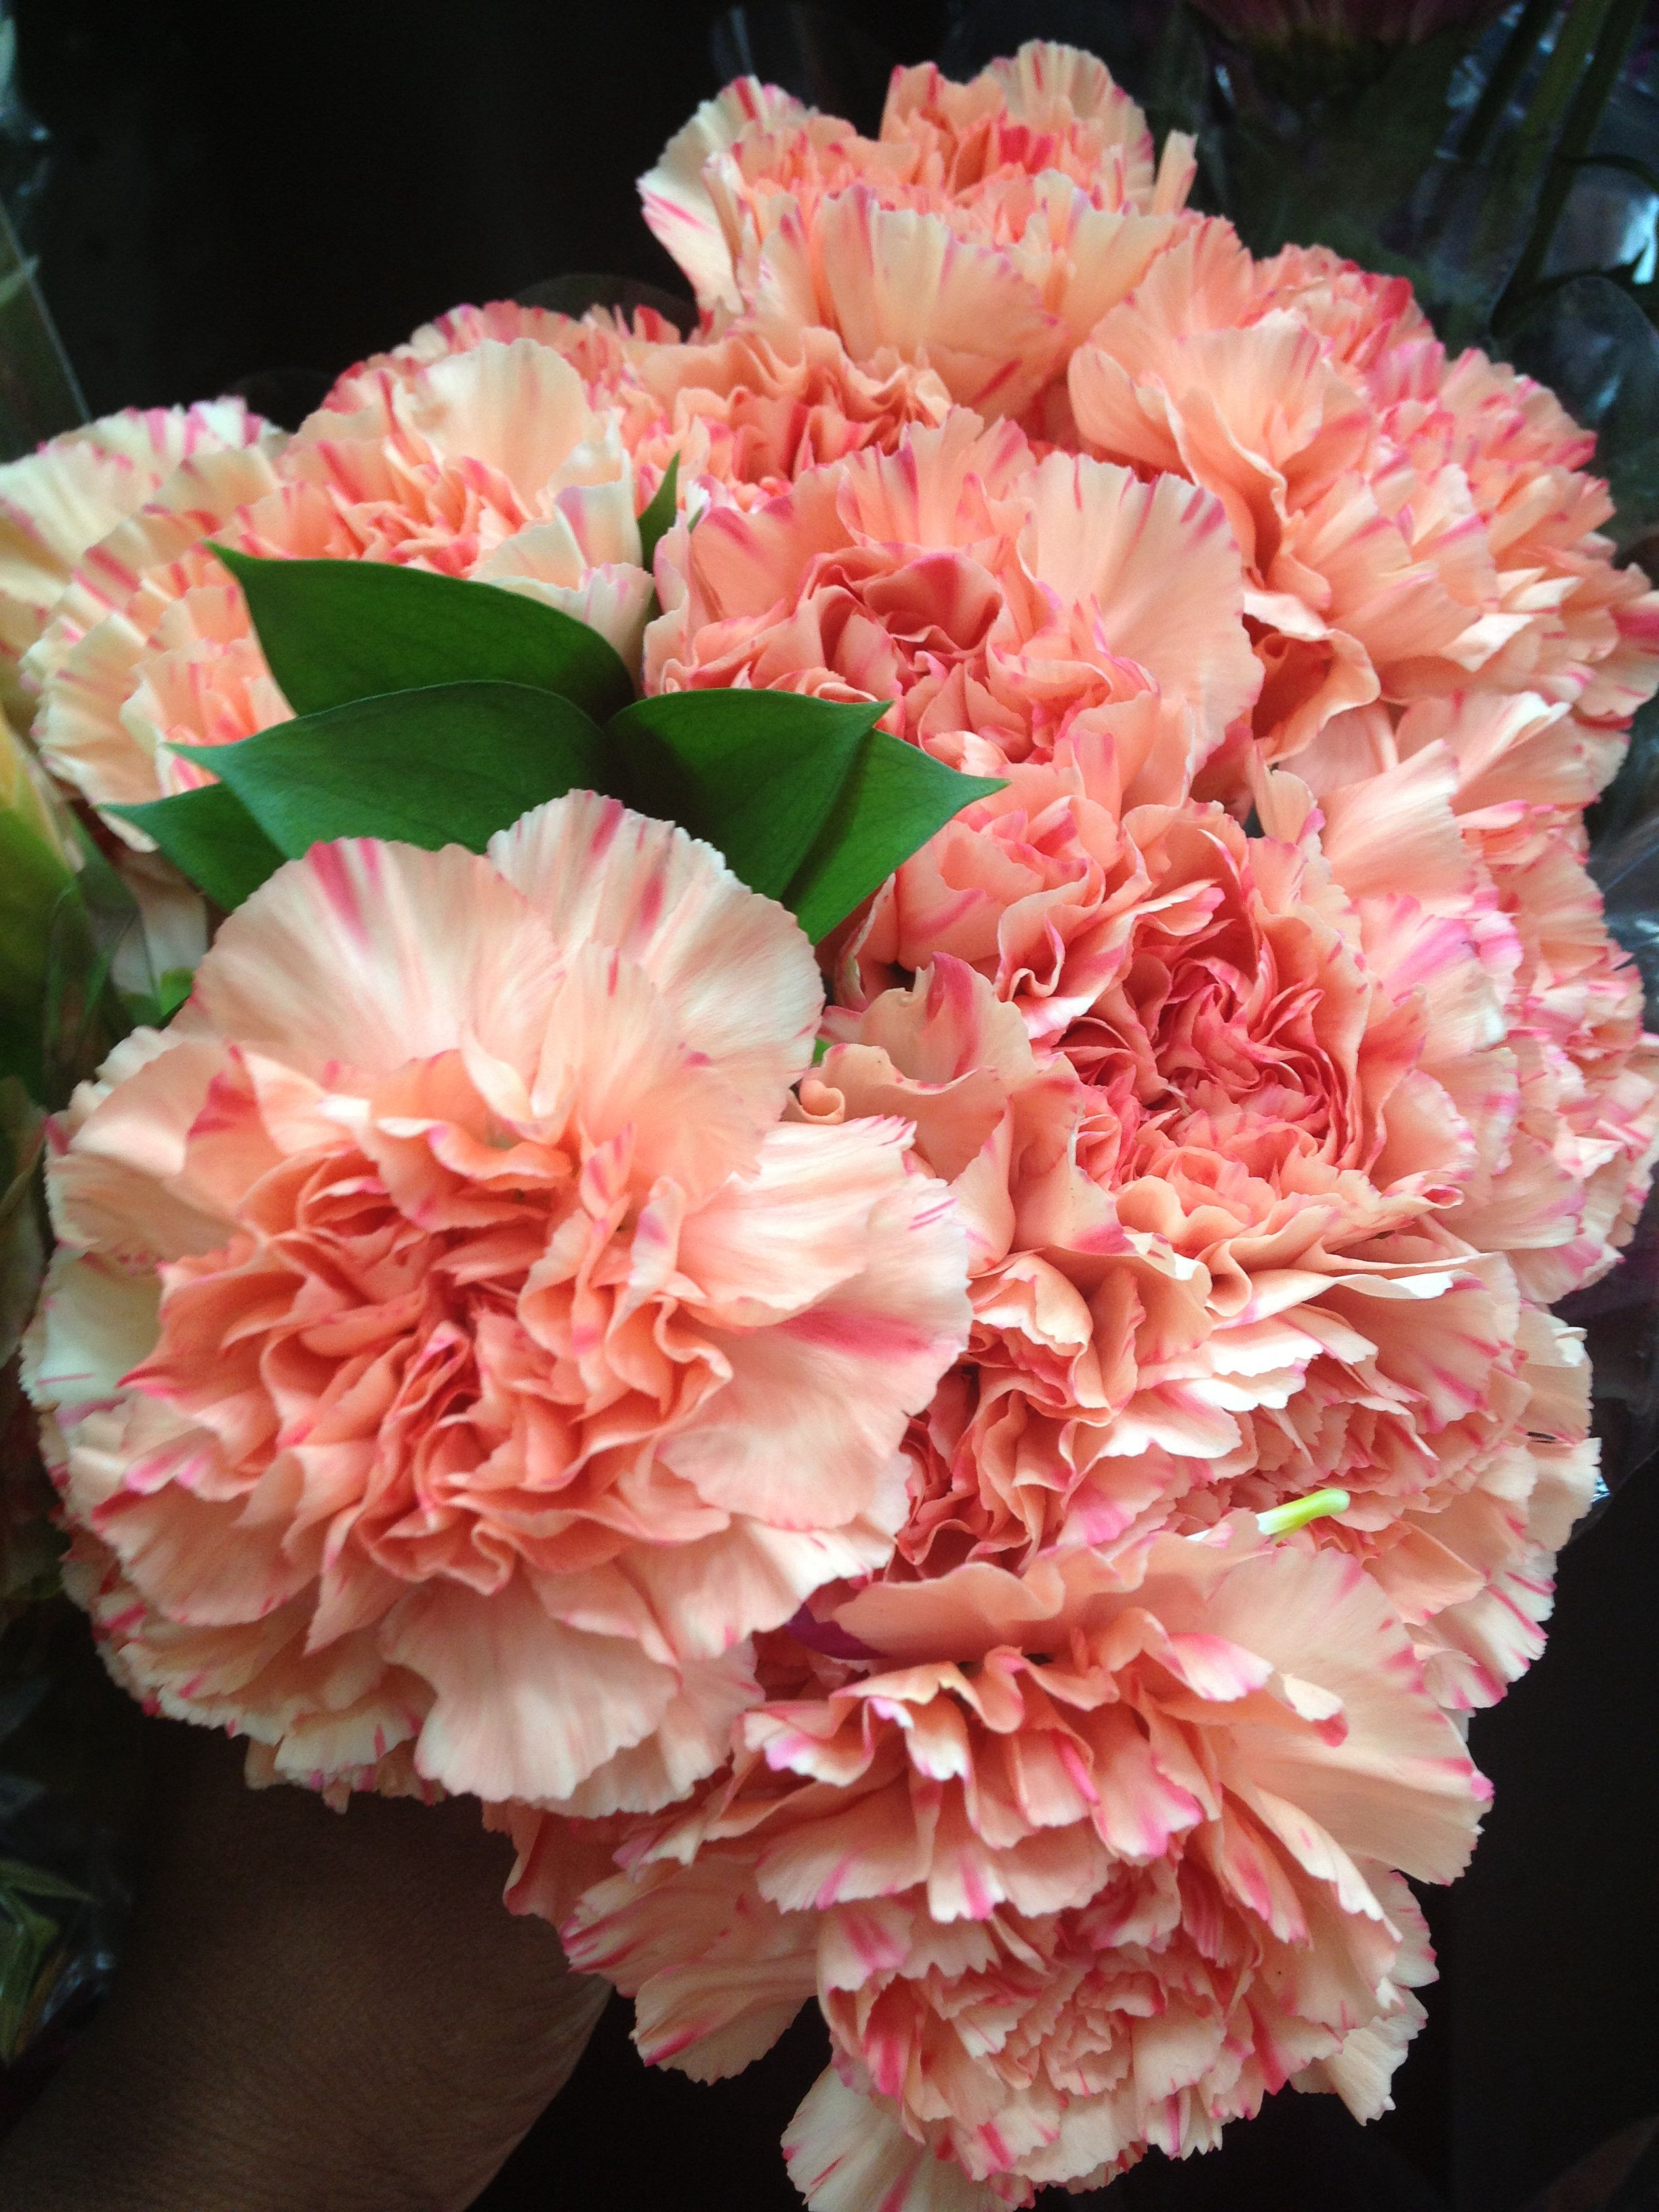 Buy Carnations In Bulk Flower Elegant Coral Carnations From Costco Wedding Stuff Pinterest